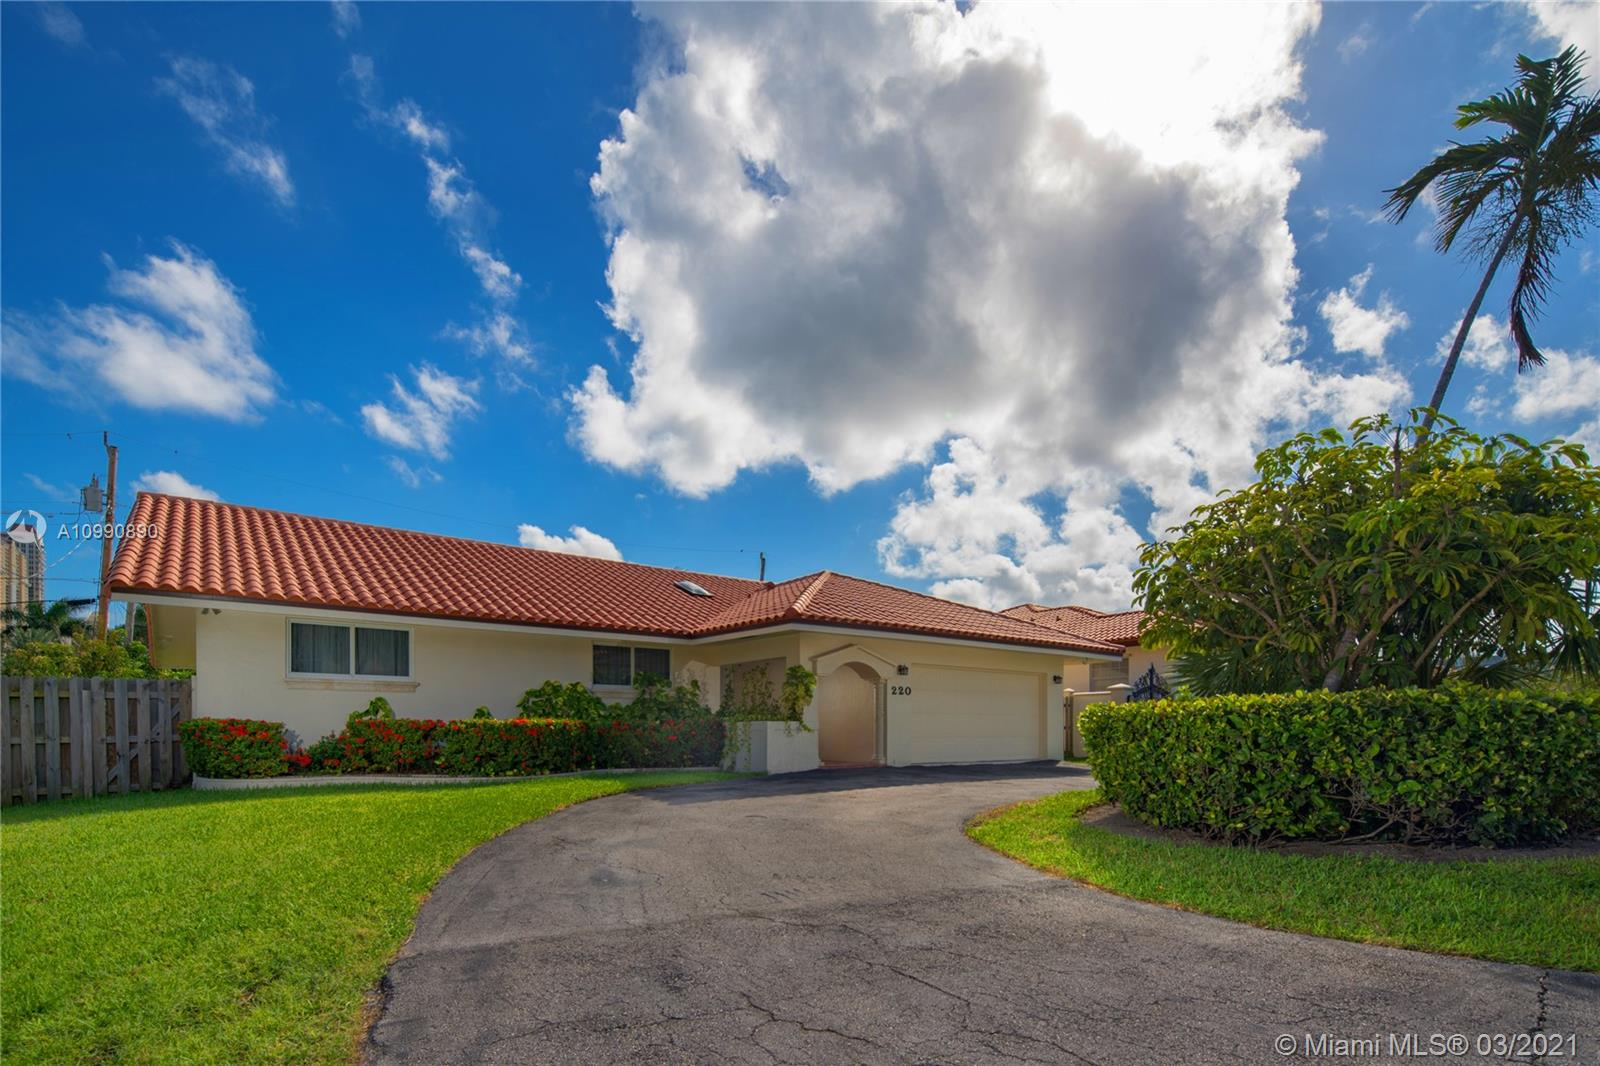 Come fall in love with this FULLY REMODELED single-family home in the heart of Sunny Isles Beach.  This house boasts a new kitchen with modern European finishes, using eco-friendly materials. All new appliances. New flooring. New bathrooms. Spacious home with 3 bedrooms and 2.5 bathrooms. Impact windows and doors throughout.  New roof in 2018. 2 car garage. Smart home control system, smart house lighting w/ Iotty Smart Switch, new washer/dryer, new water heater. 2 AC systems. Perfect home for a family looking for a safe and friendly neighborhood. A+ rated School District.  Walking distance to beaches, playground, shops, restaurants, houses of worship. Minutes to Aventura Mall, Bal Harbour Shoppes, 2 international airports.